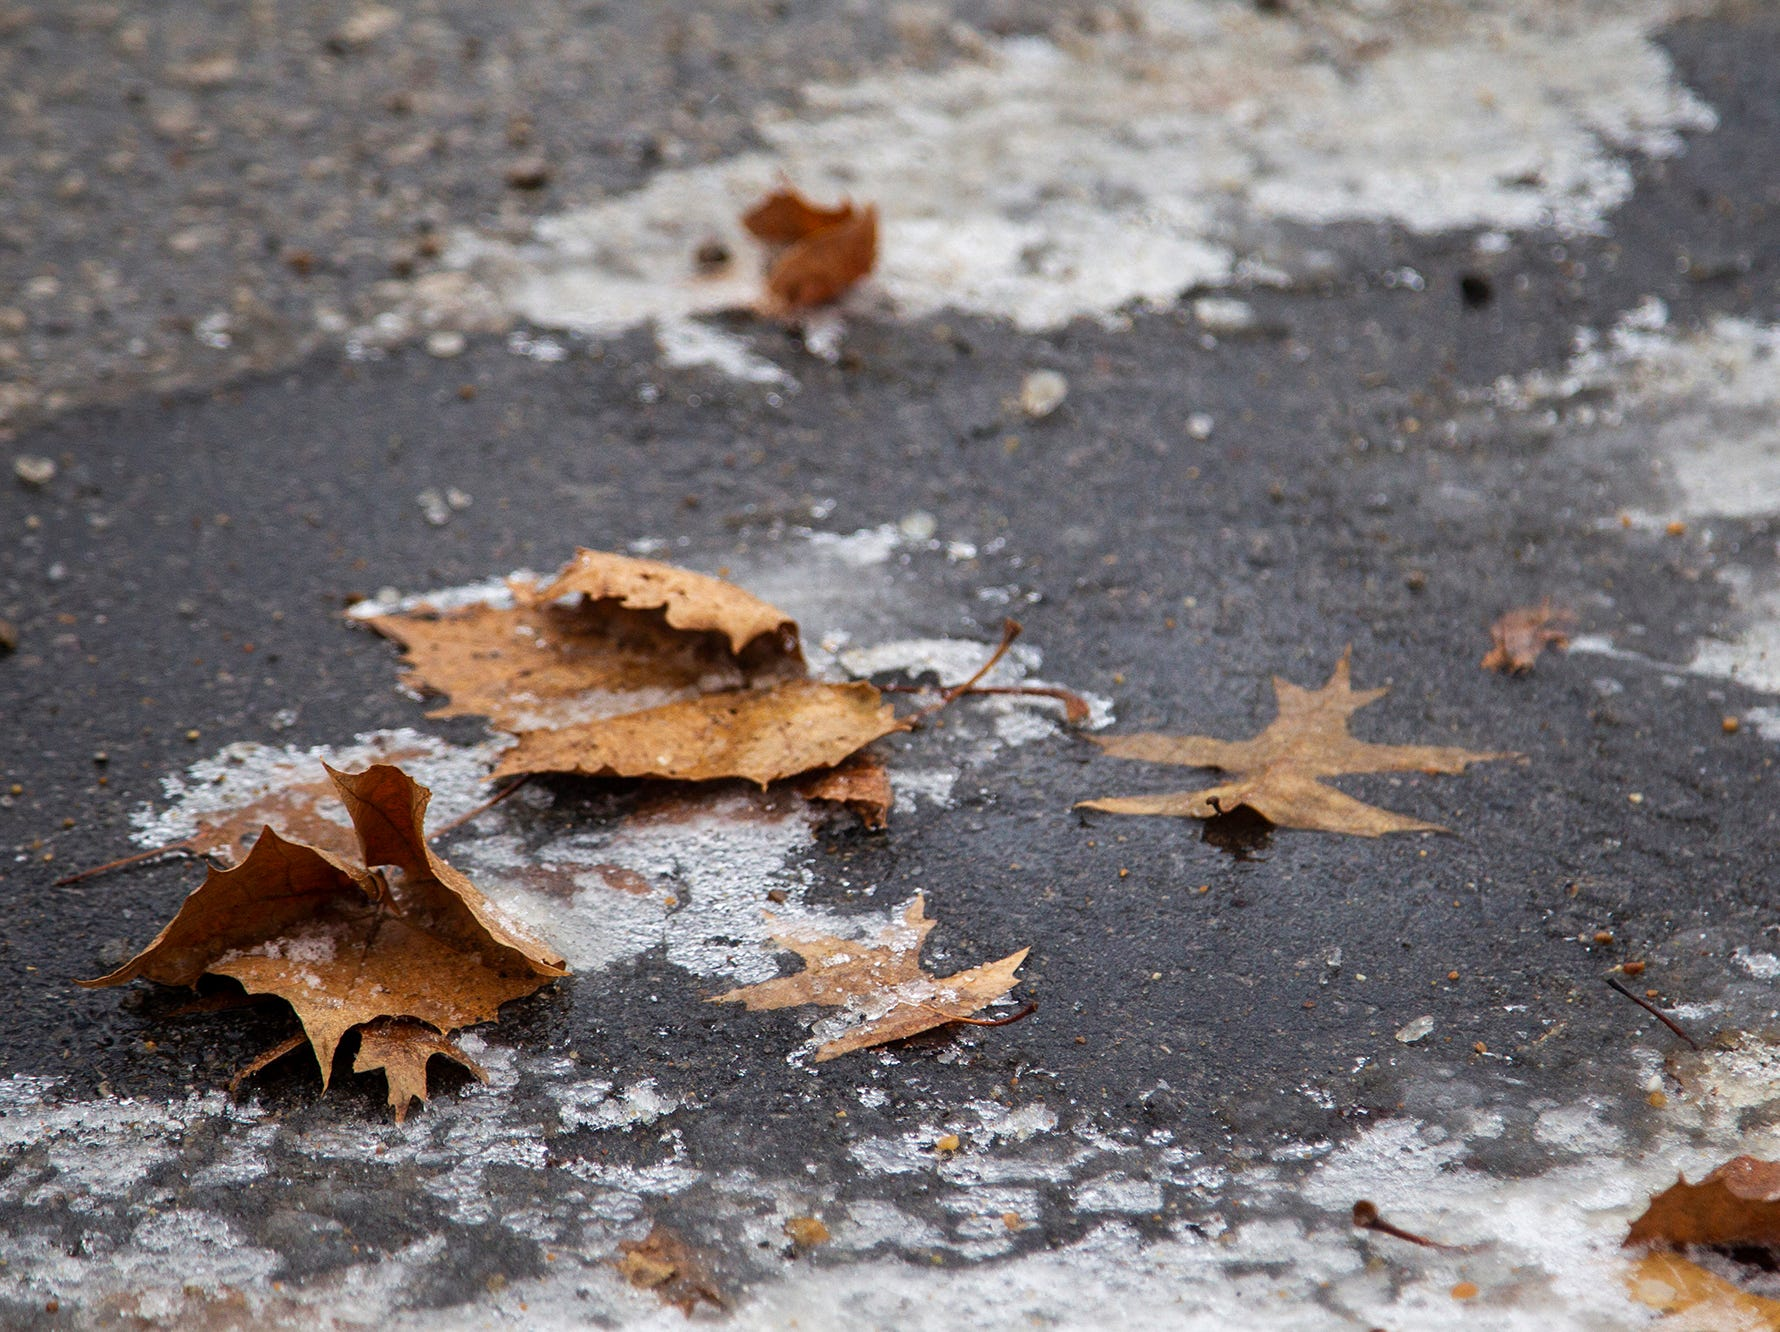 Icy road conditions are seen on Friday, Dec. 28, 2018, off of Court Street near 2nd Avenue on the east side of Iowa City.